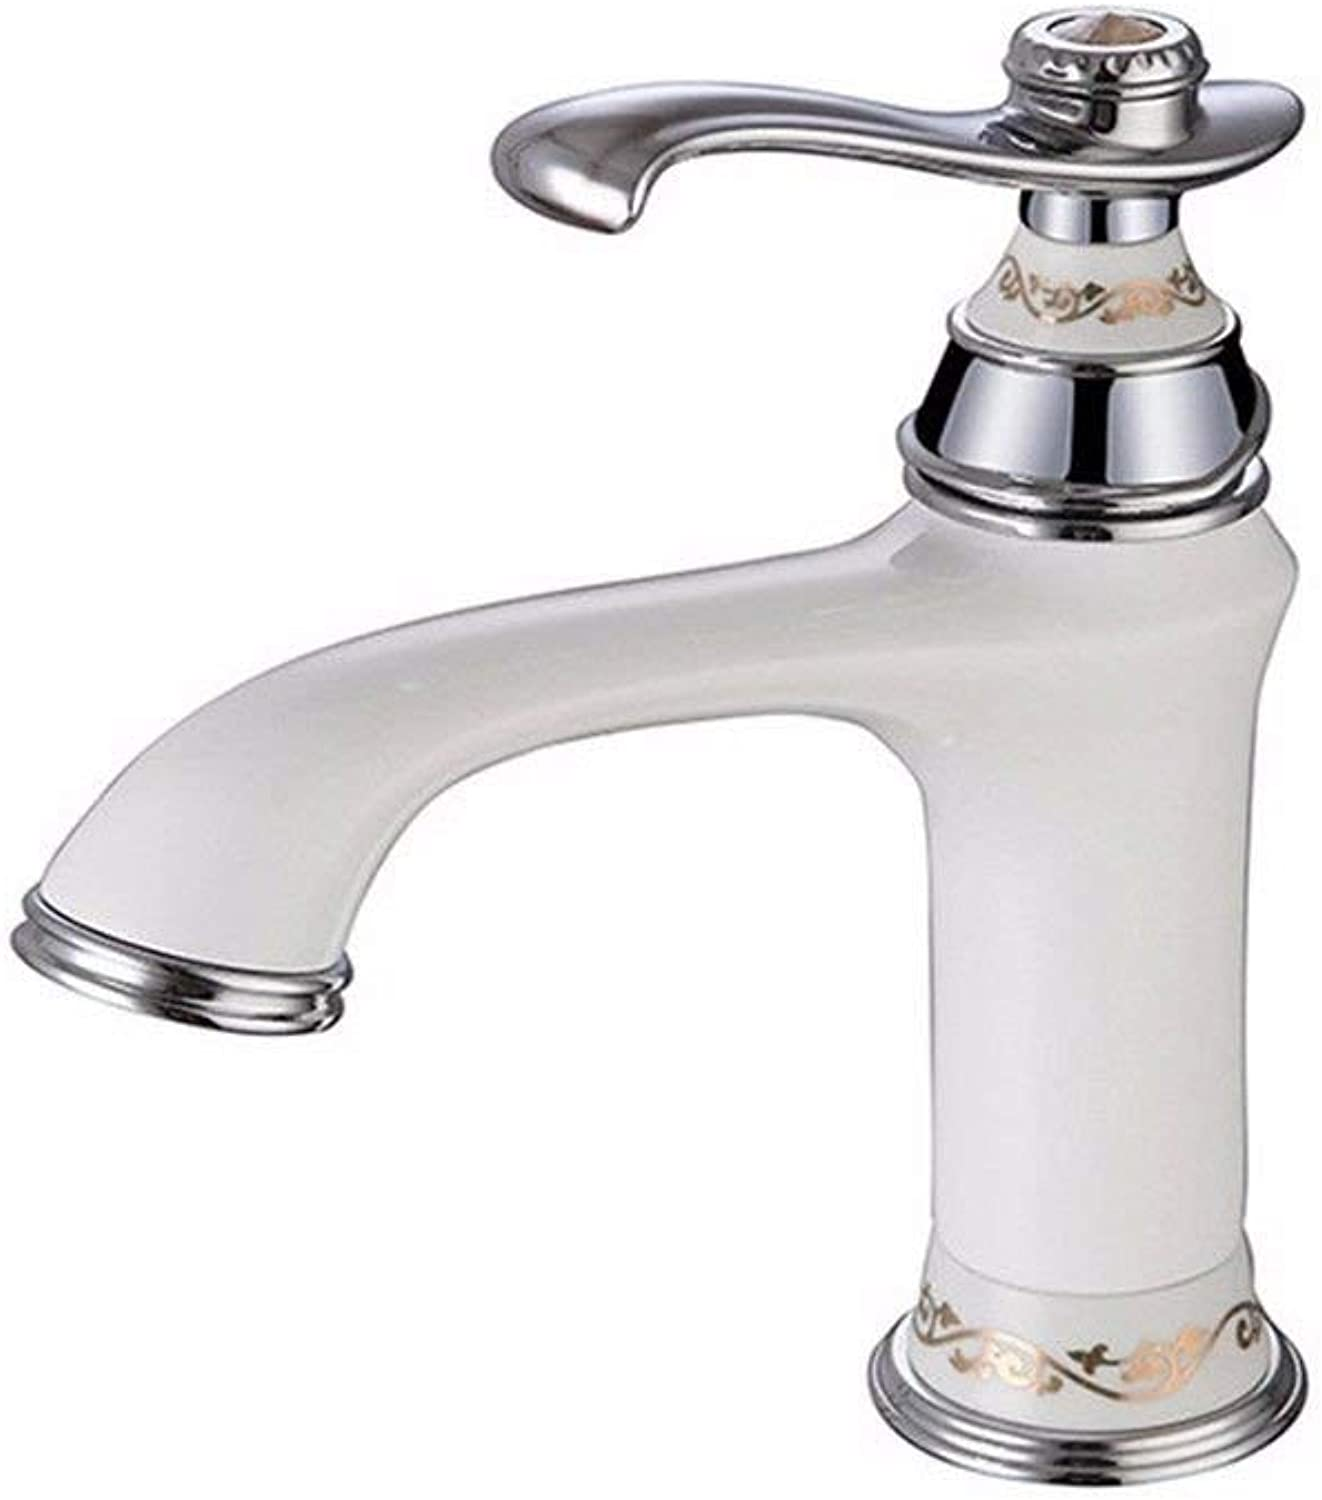 WMING HOME Sink Mixer Tap Bathroom Kitchen Basin Tap Leakproof Save Water Waterfall Water Outlet Cold Water Ceramic Valve Three Hole Double Handle Bathroom